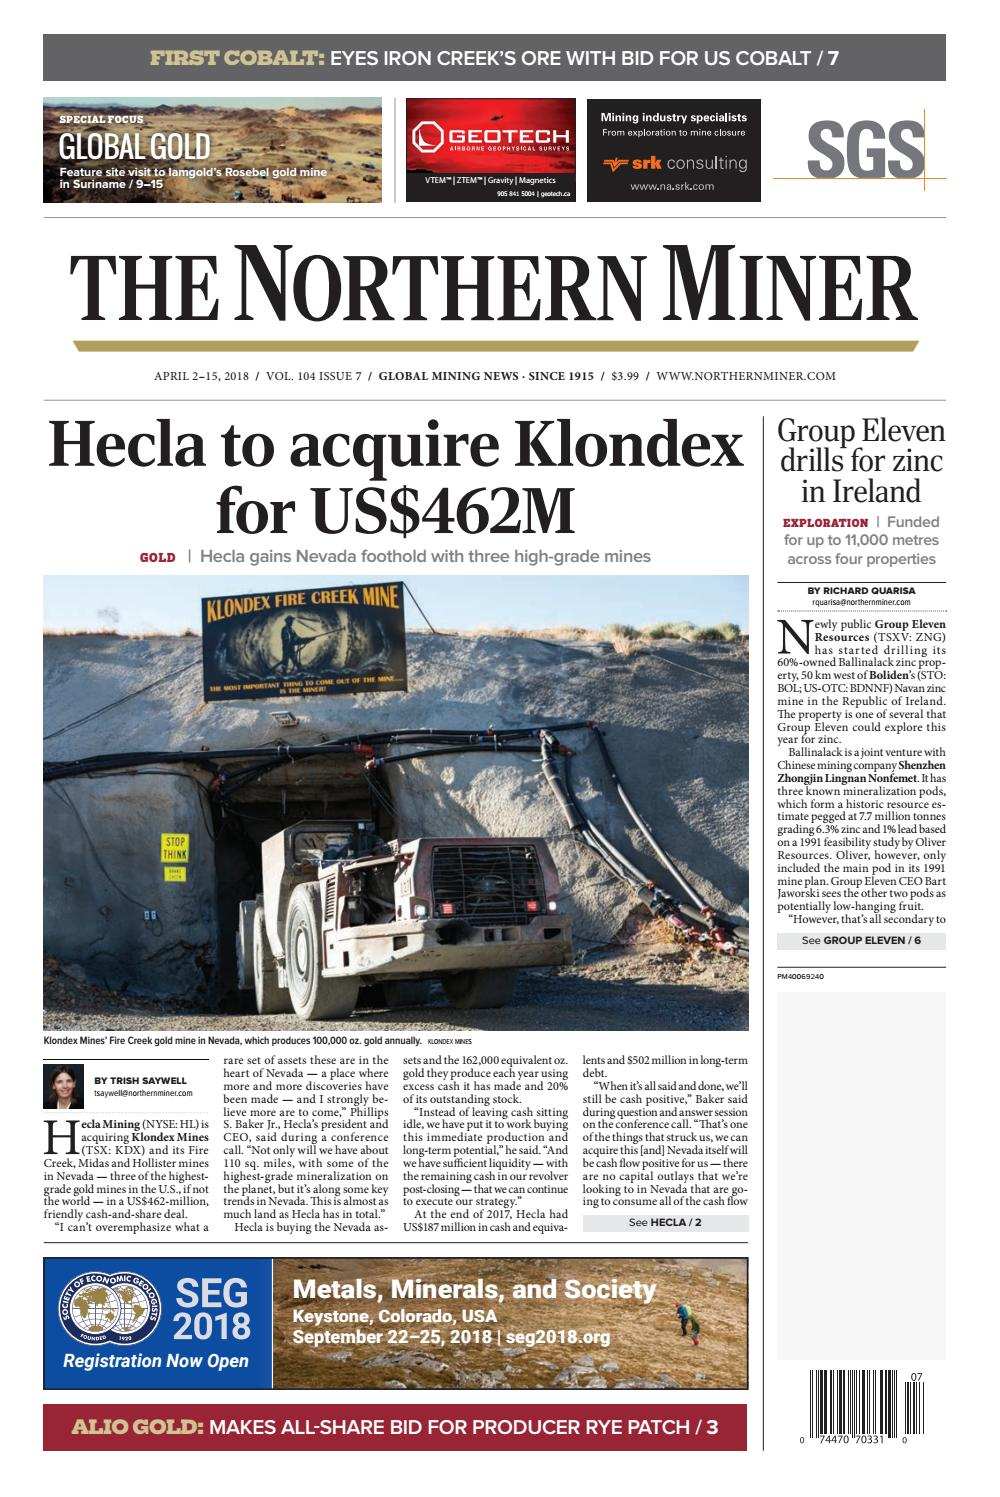 The Northern Miner April 2 2018 Issue